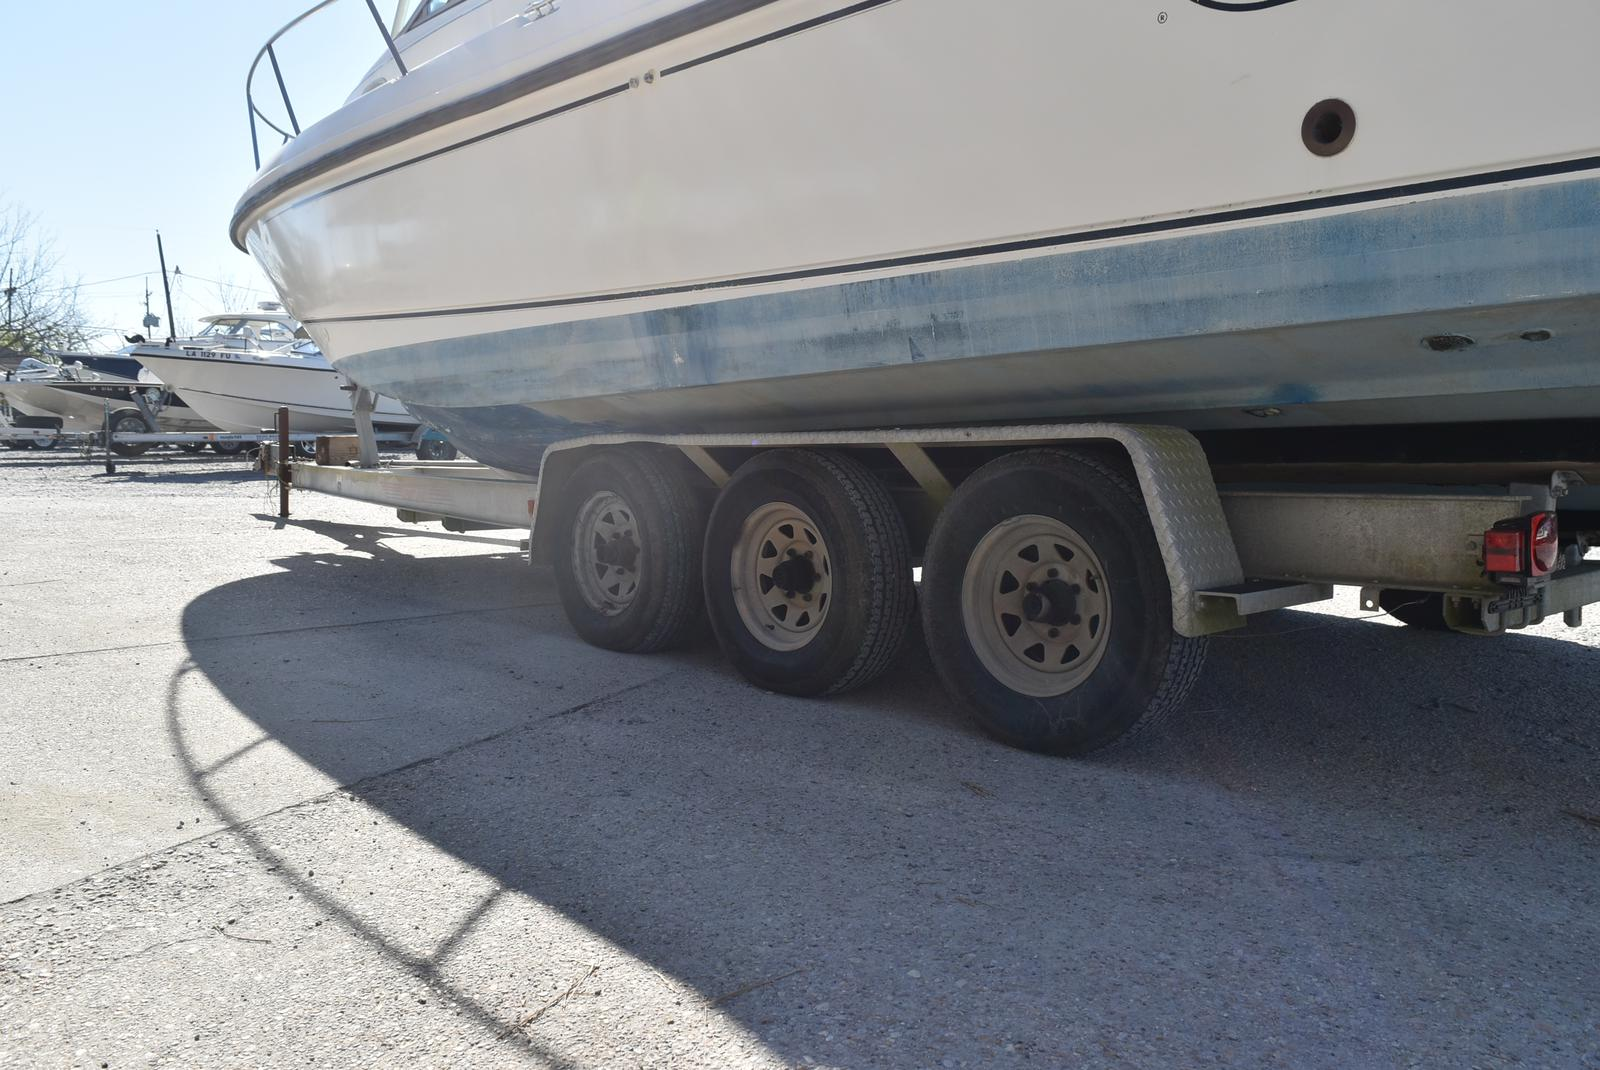 1999 Boston Whaler boat for sale, model of the boat is 285 Conquest & Image # 32 of 50